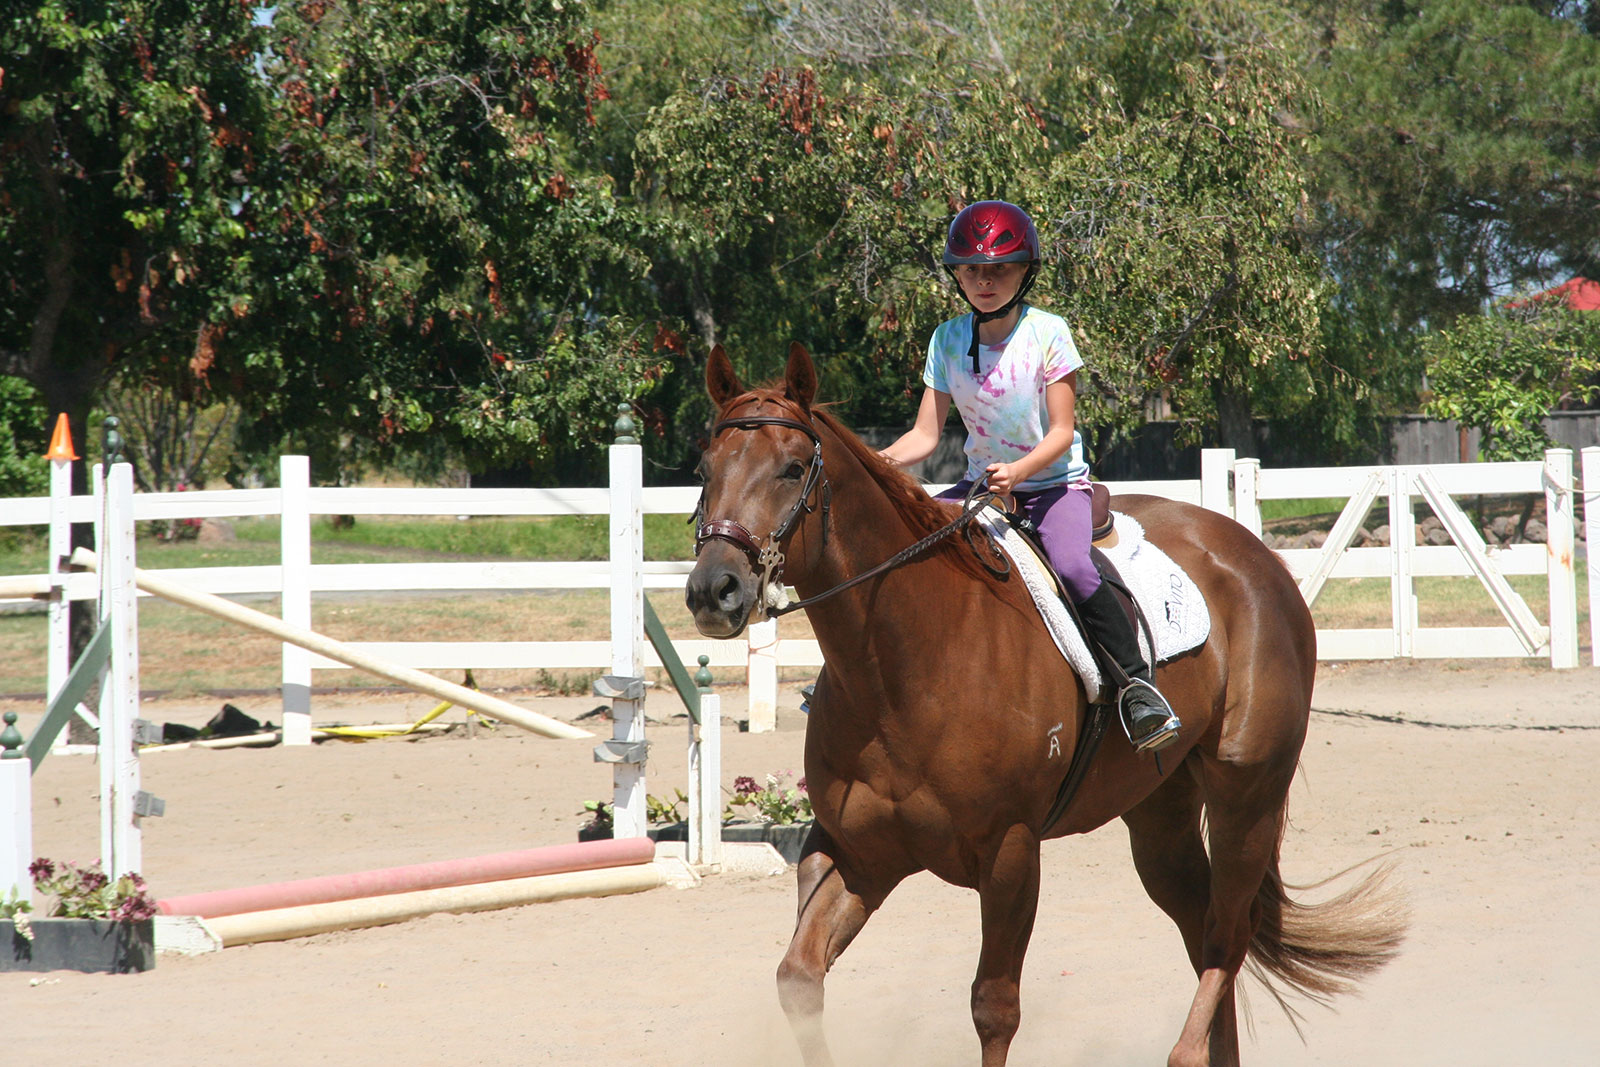 Riding Lesson Focus